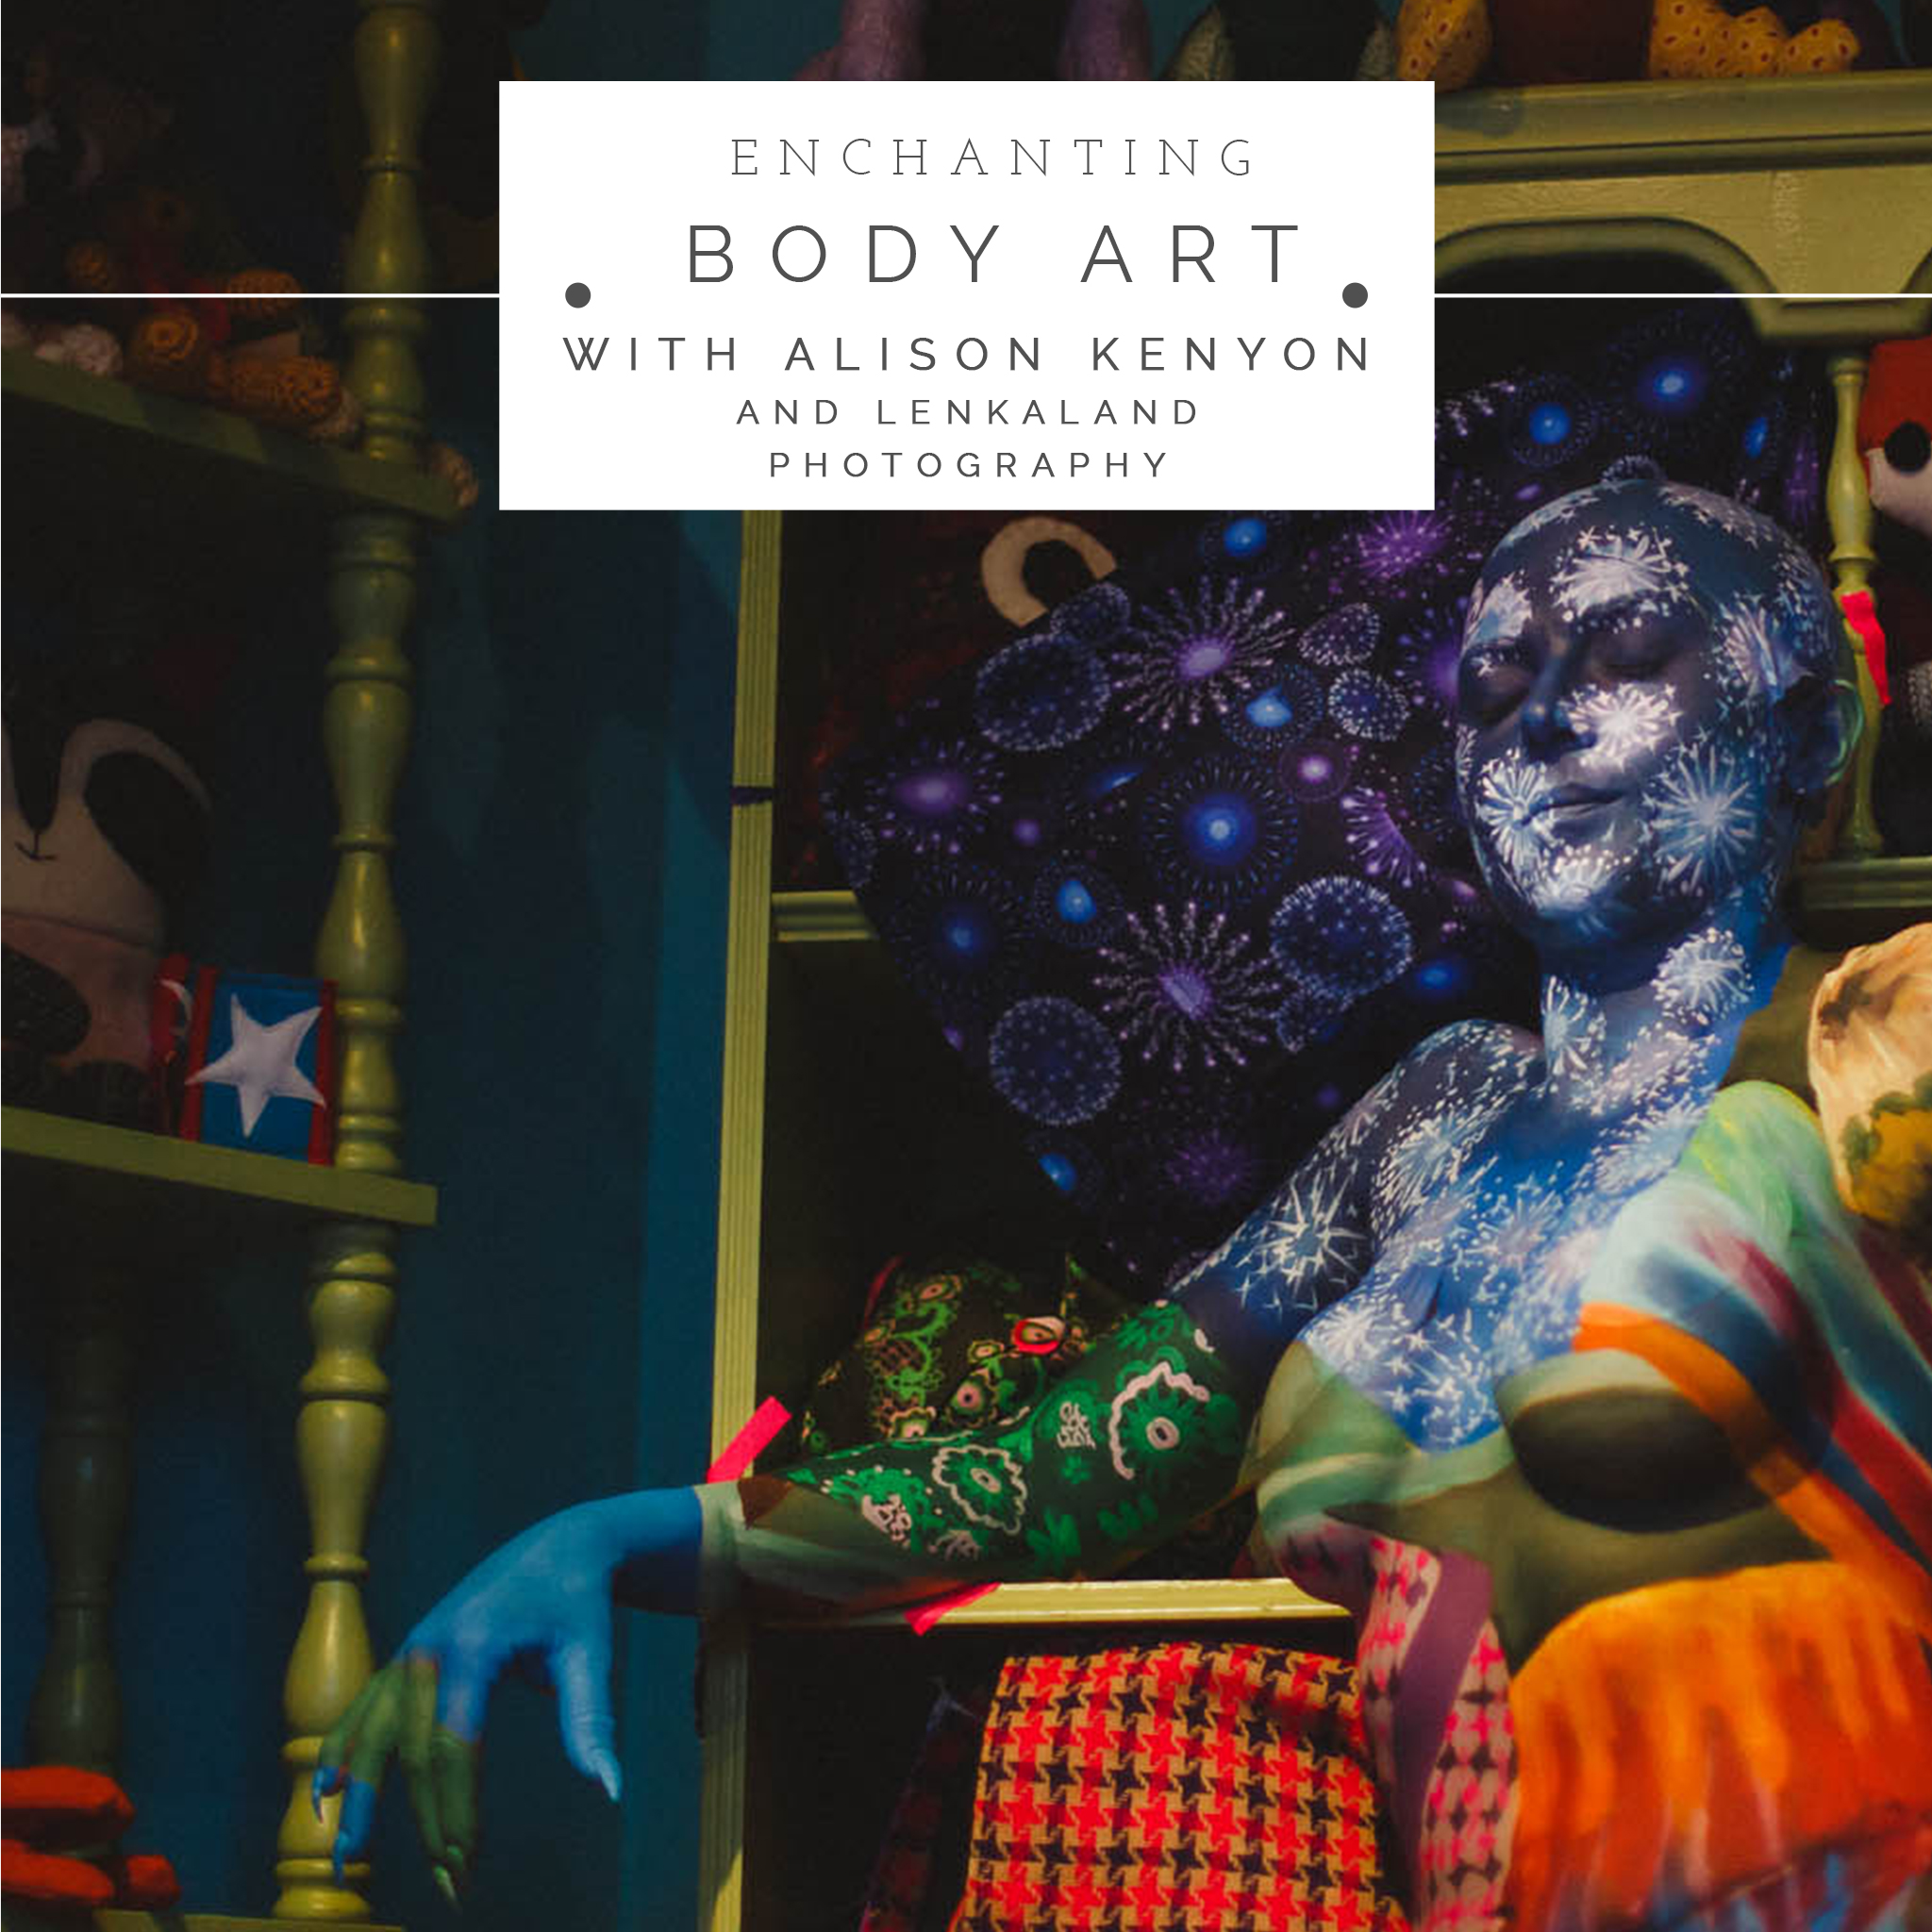 Enchanting Body Art with Alison Kenyon